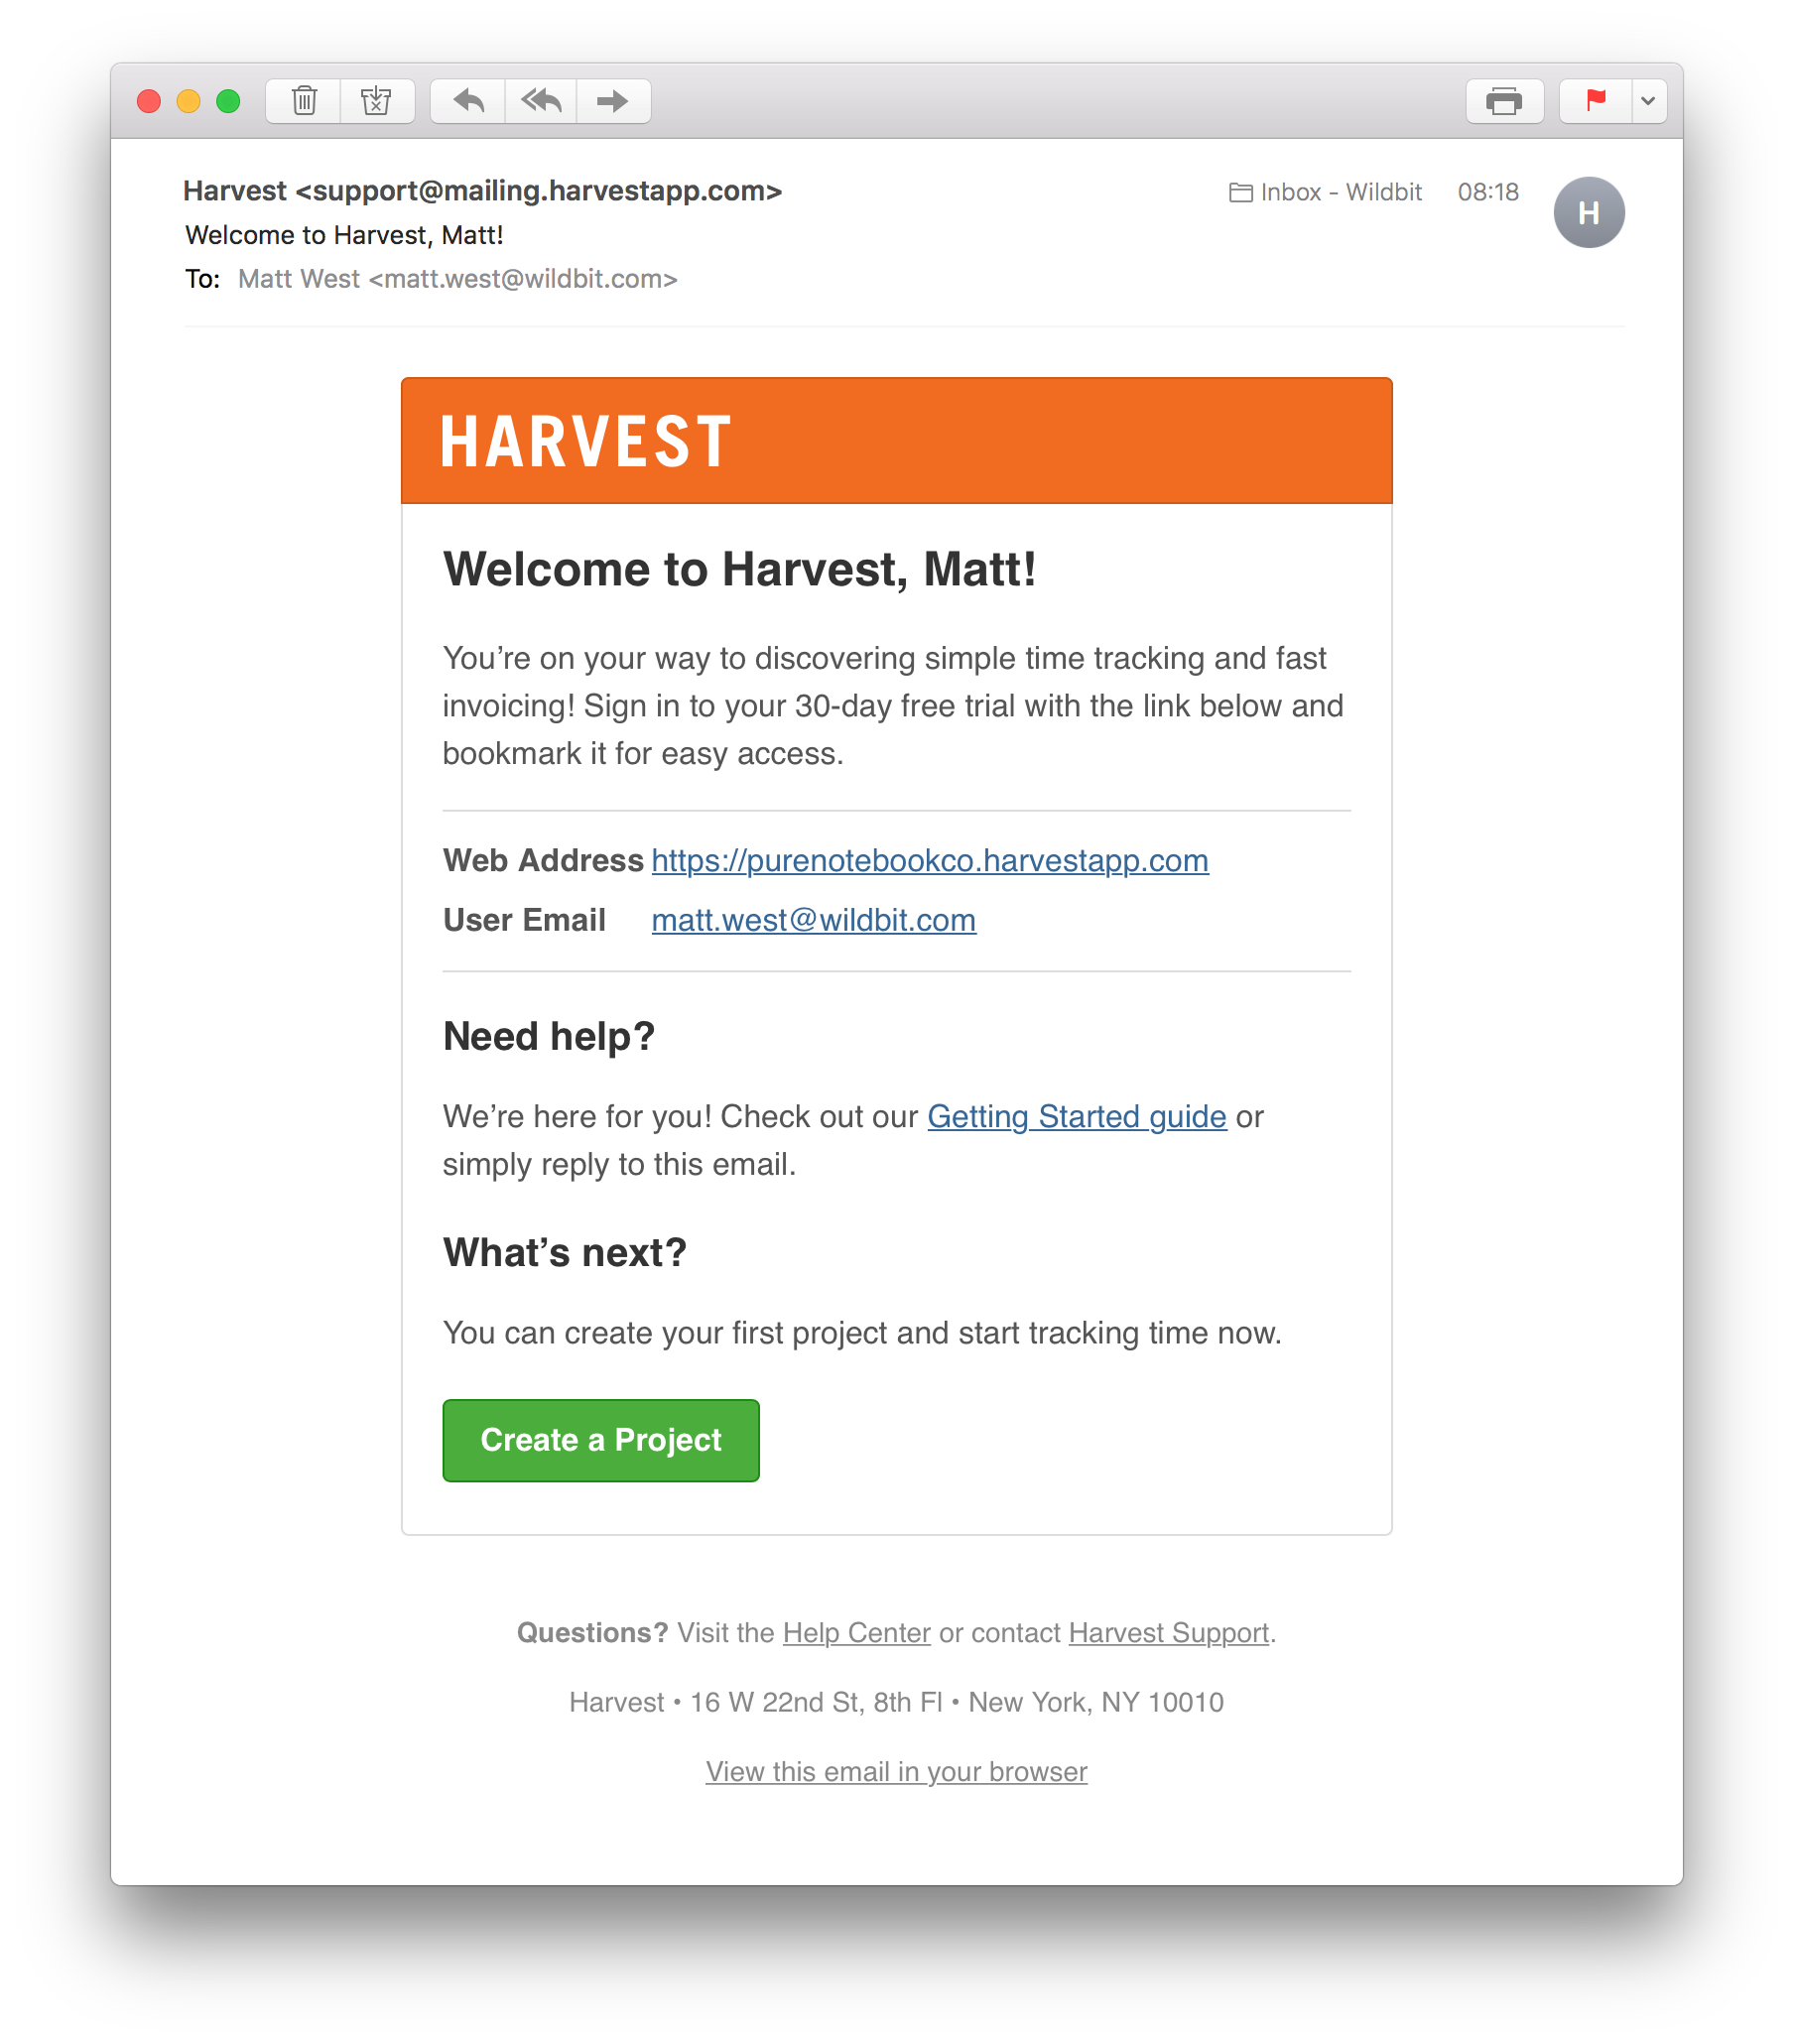 Harvest Welcome Email